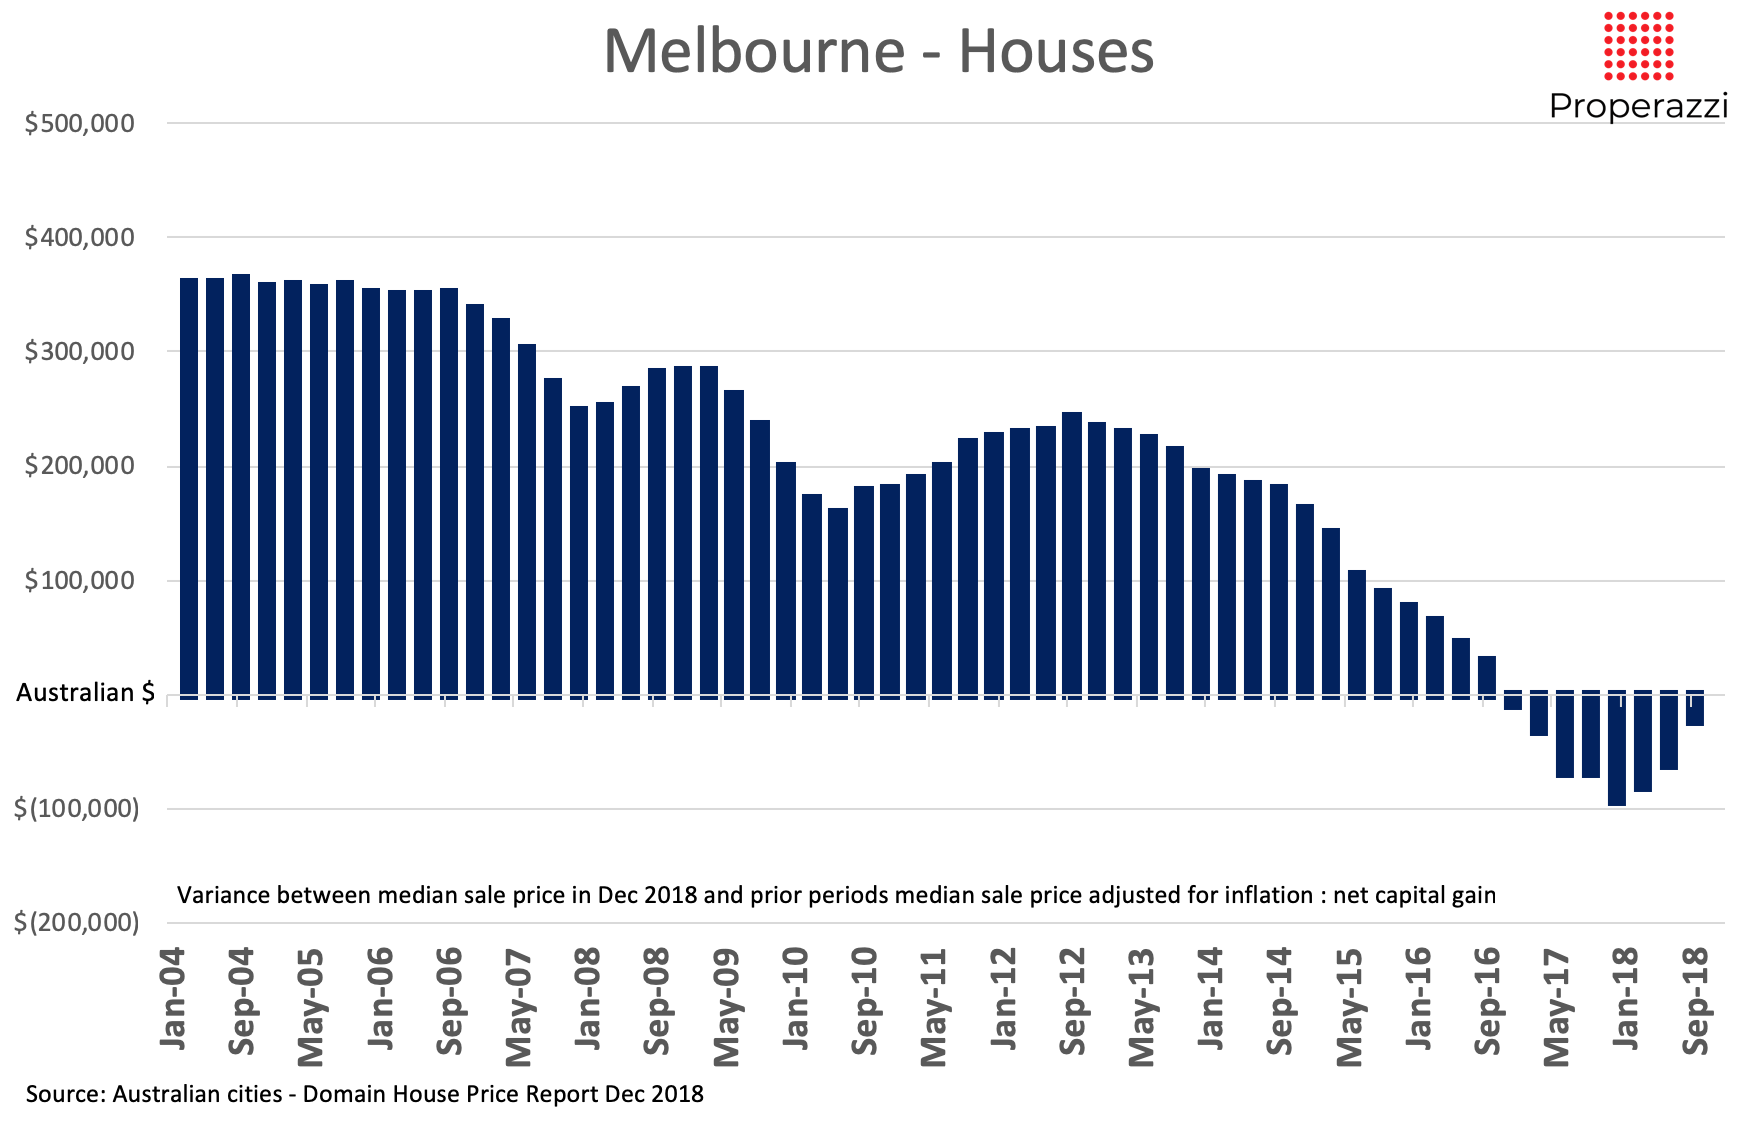 Melbourne notional capital gain in house prices to Dec 2018 Properazzi